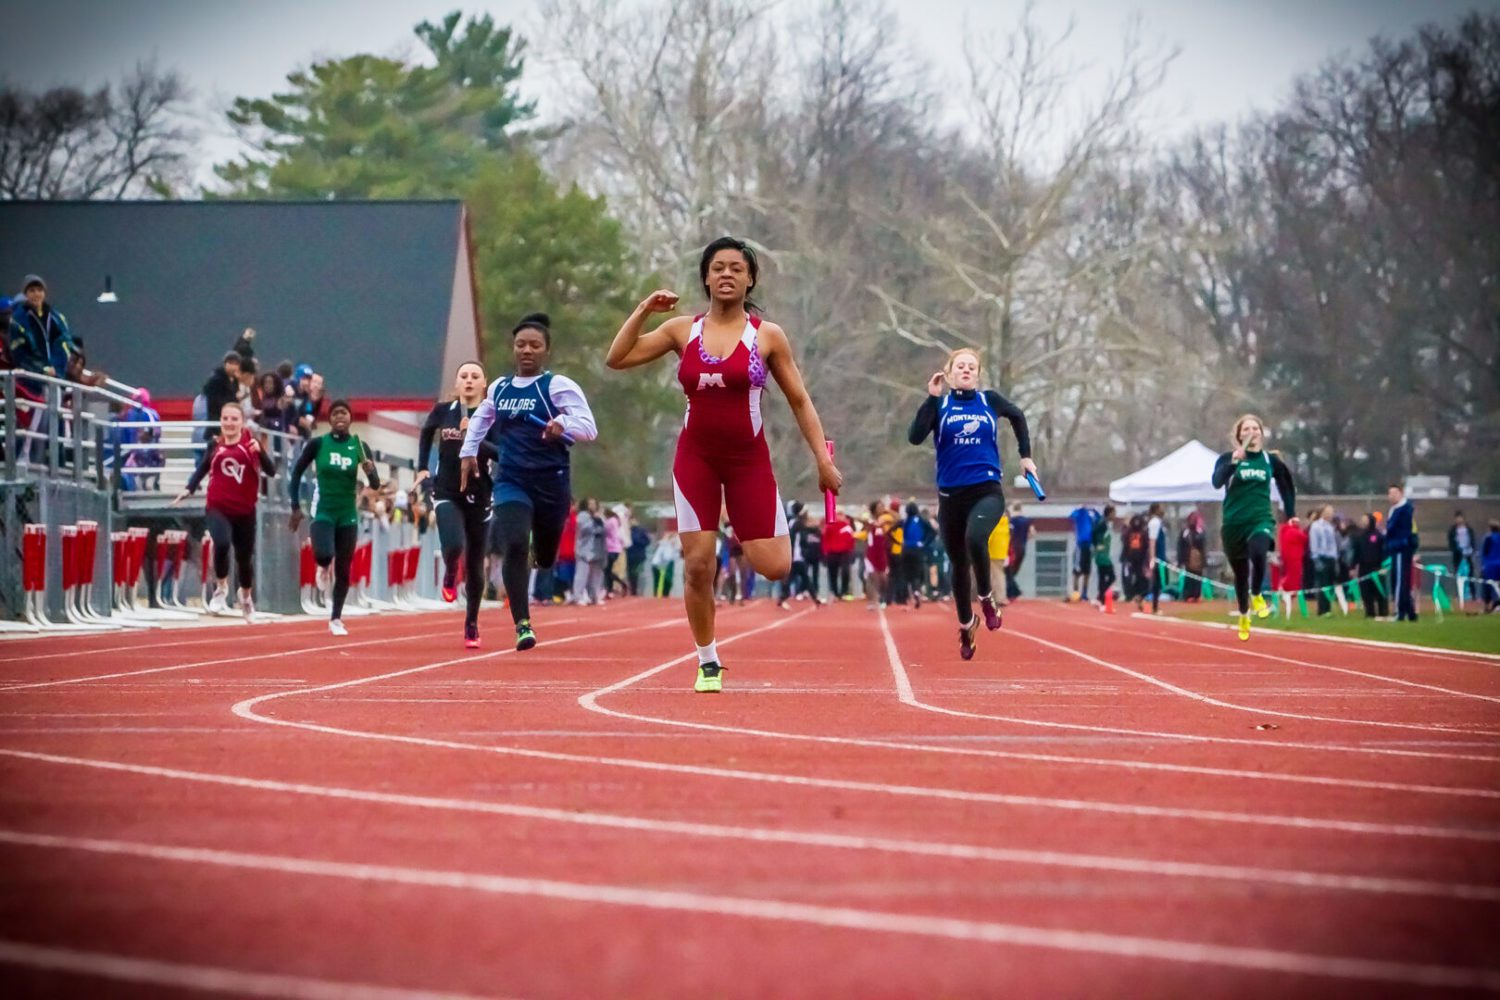 Muskegon girls take third, R-P fourth, and Mona Shores fifth at OK Black Conference track meet